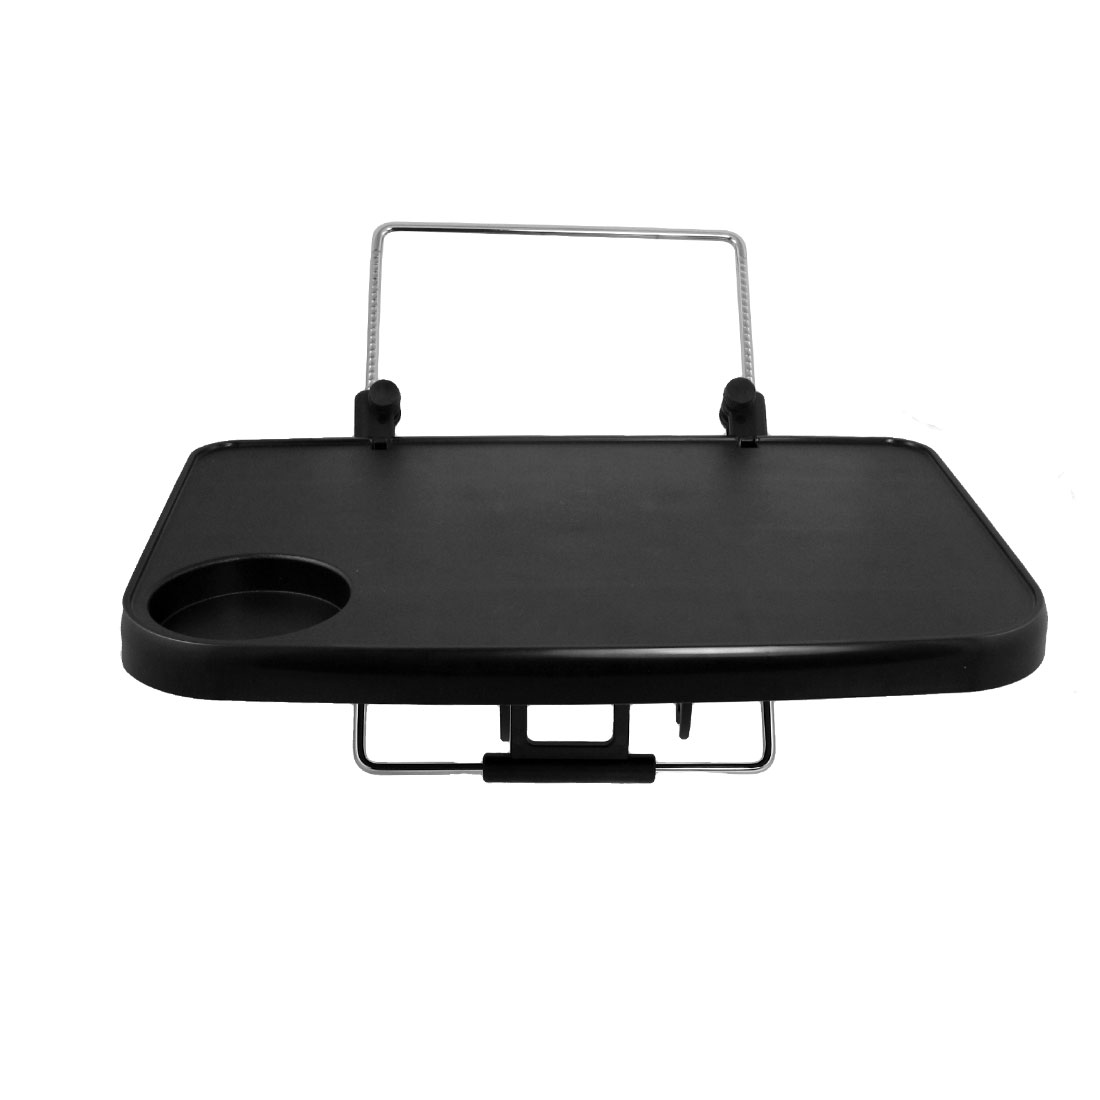 Car Auto Interior Adjustable Tray Bracket Holder Black for Laptop